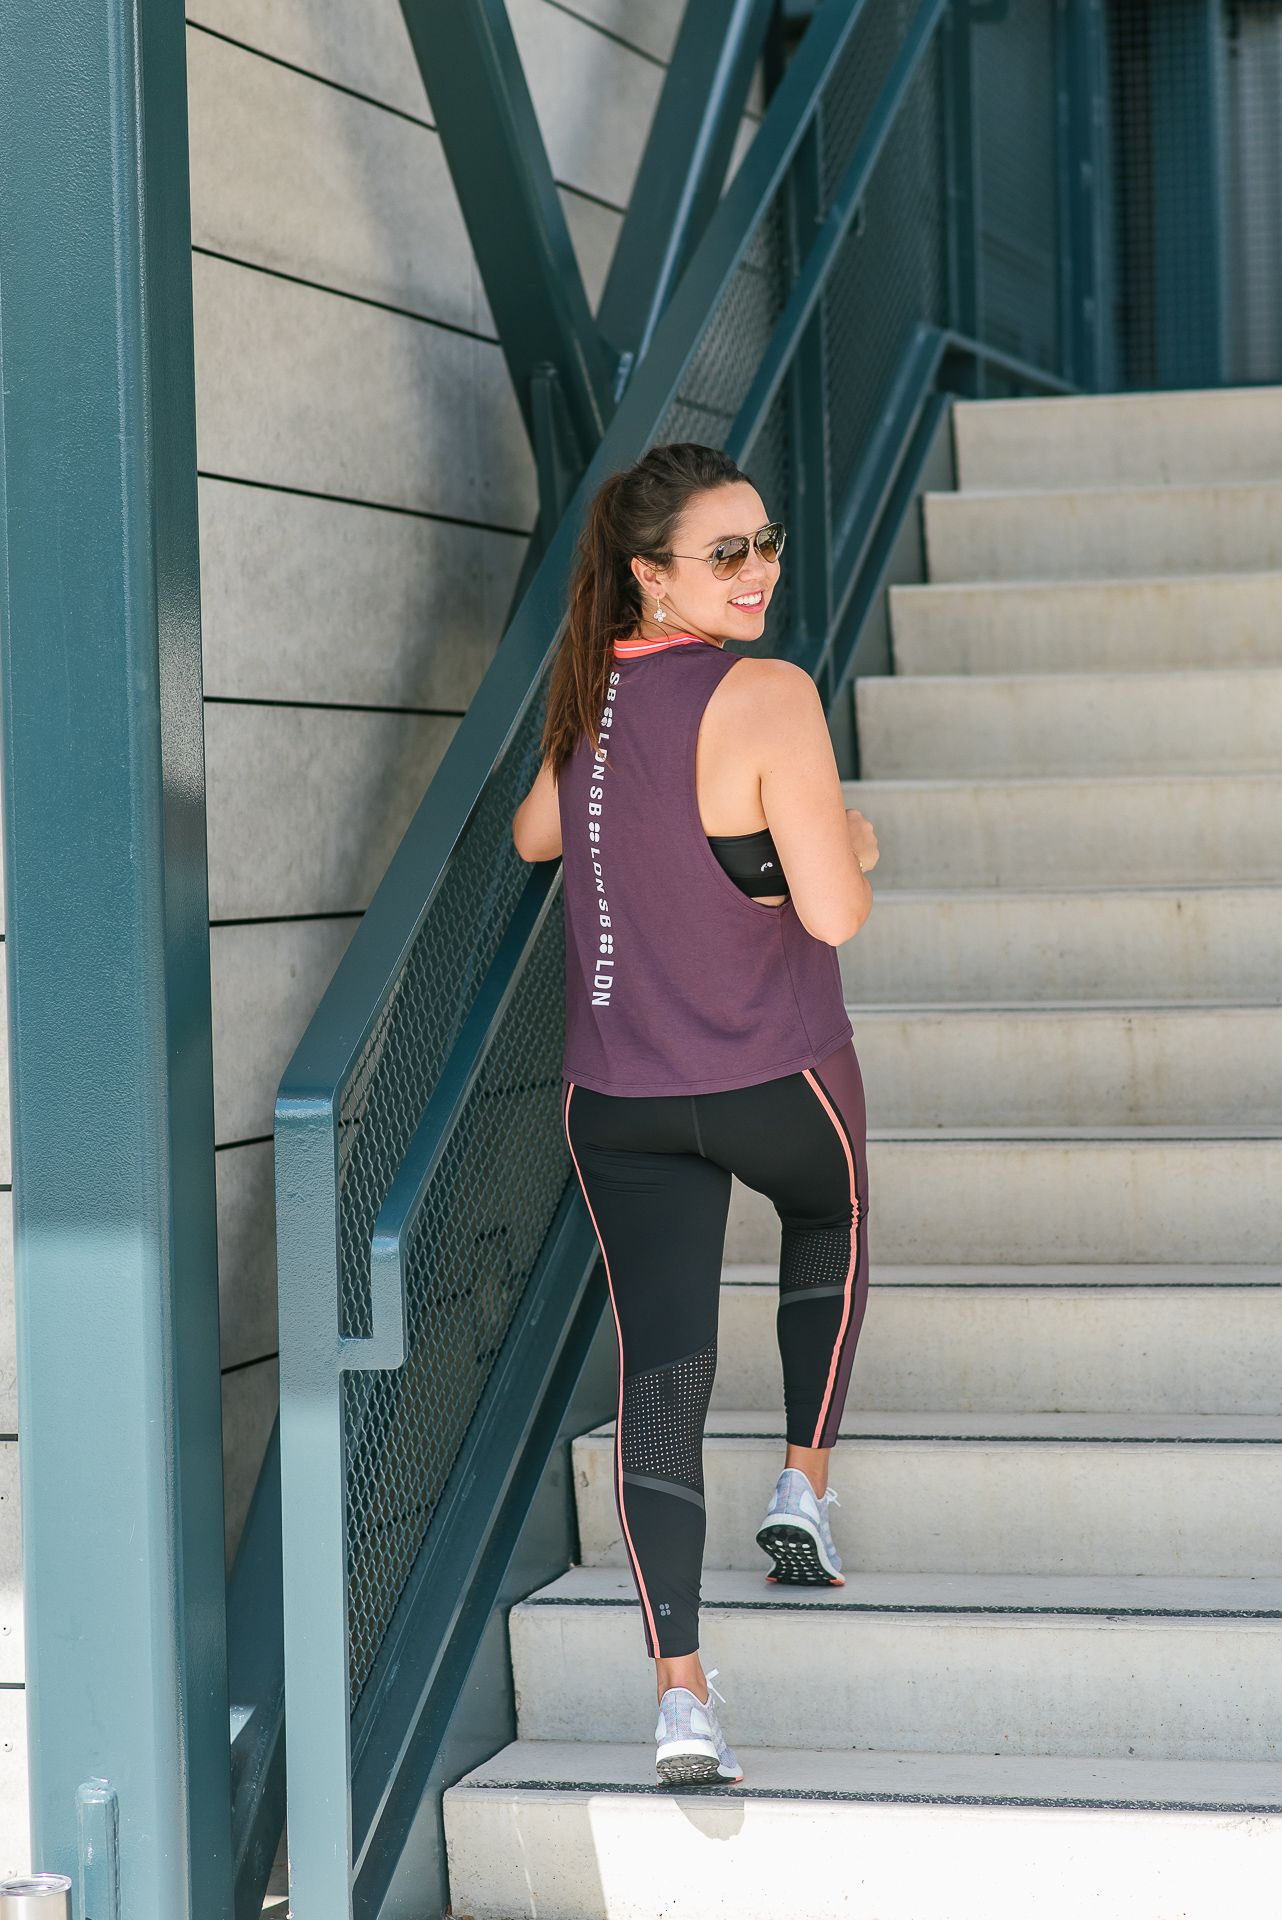 127f51a7c4 Sweaty Betty outfits, workout gear, fall fitness update, workout routine,  leggings worth the splurge! | Adored by Alex